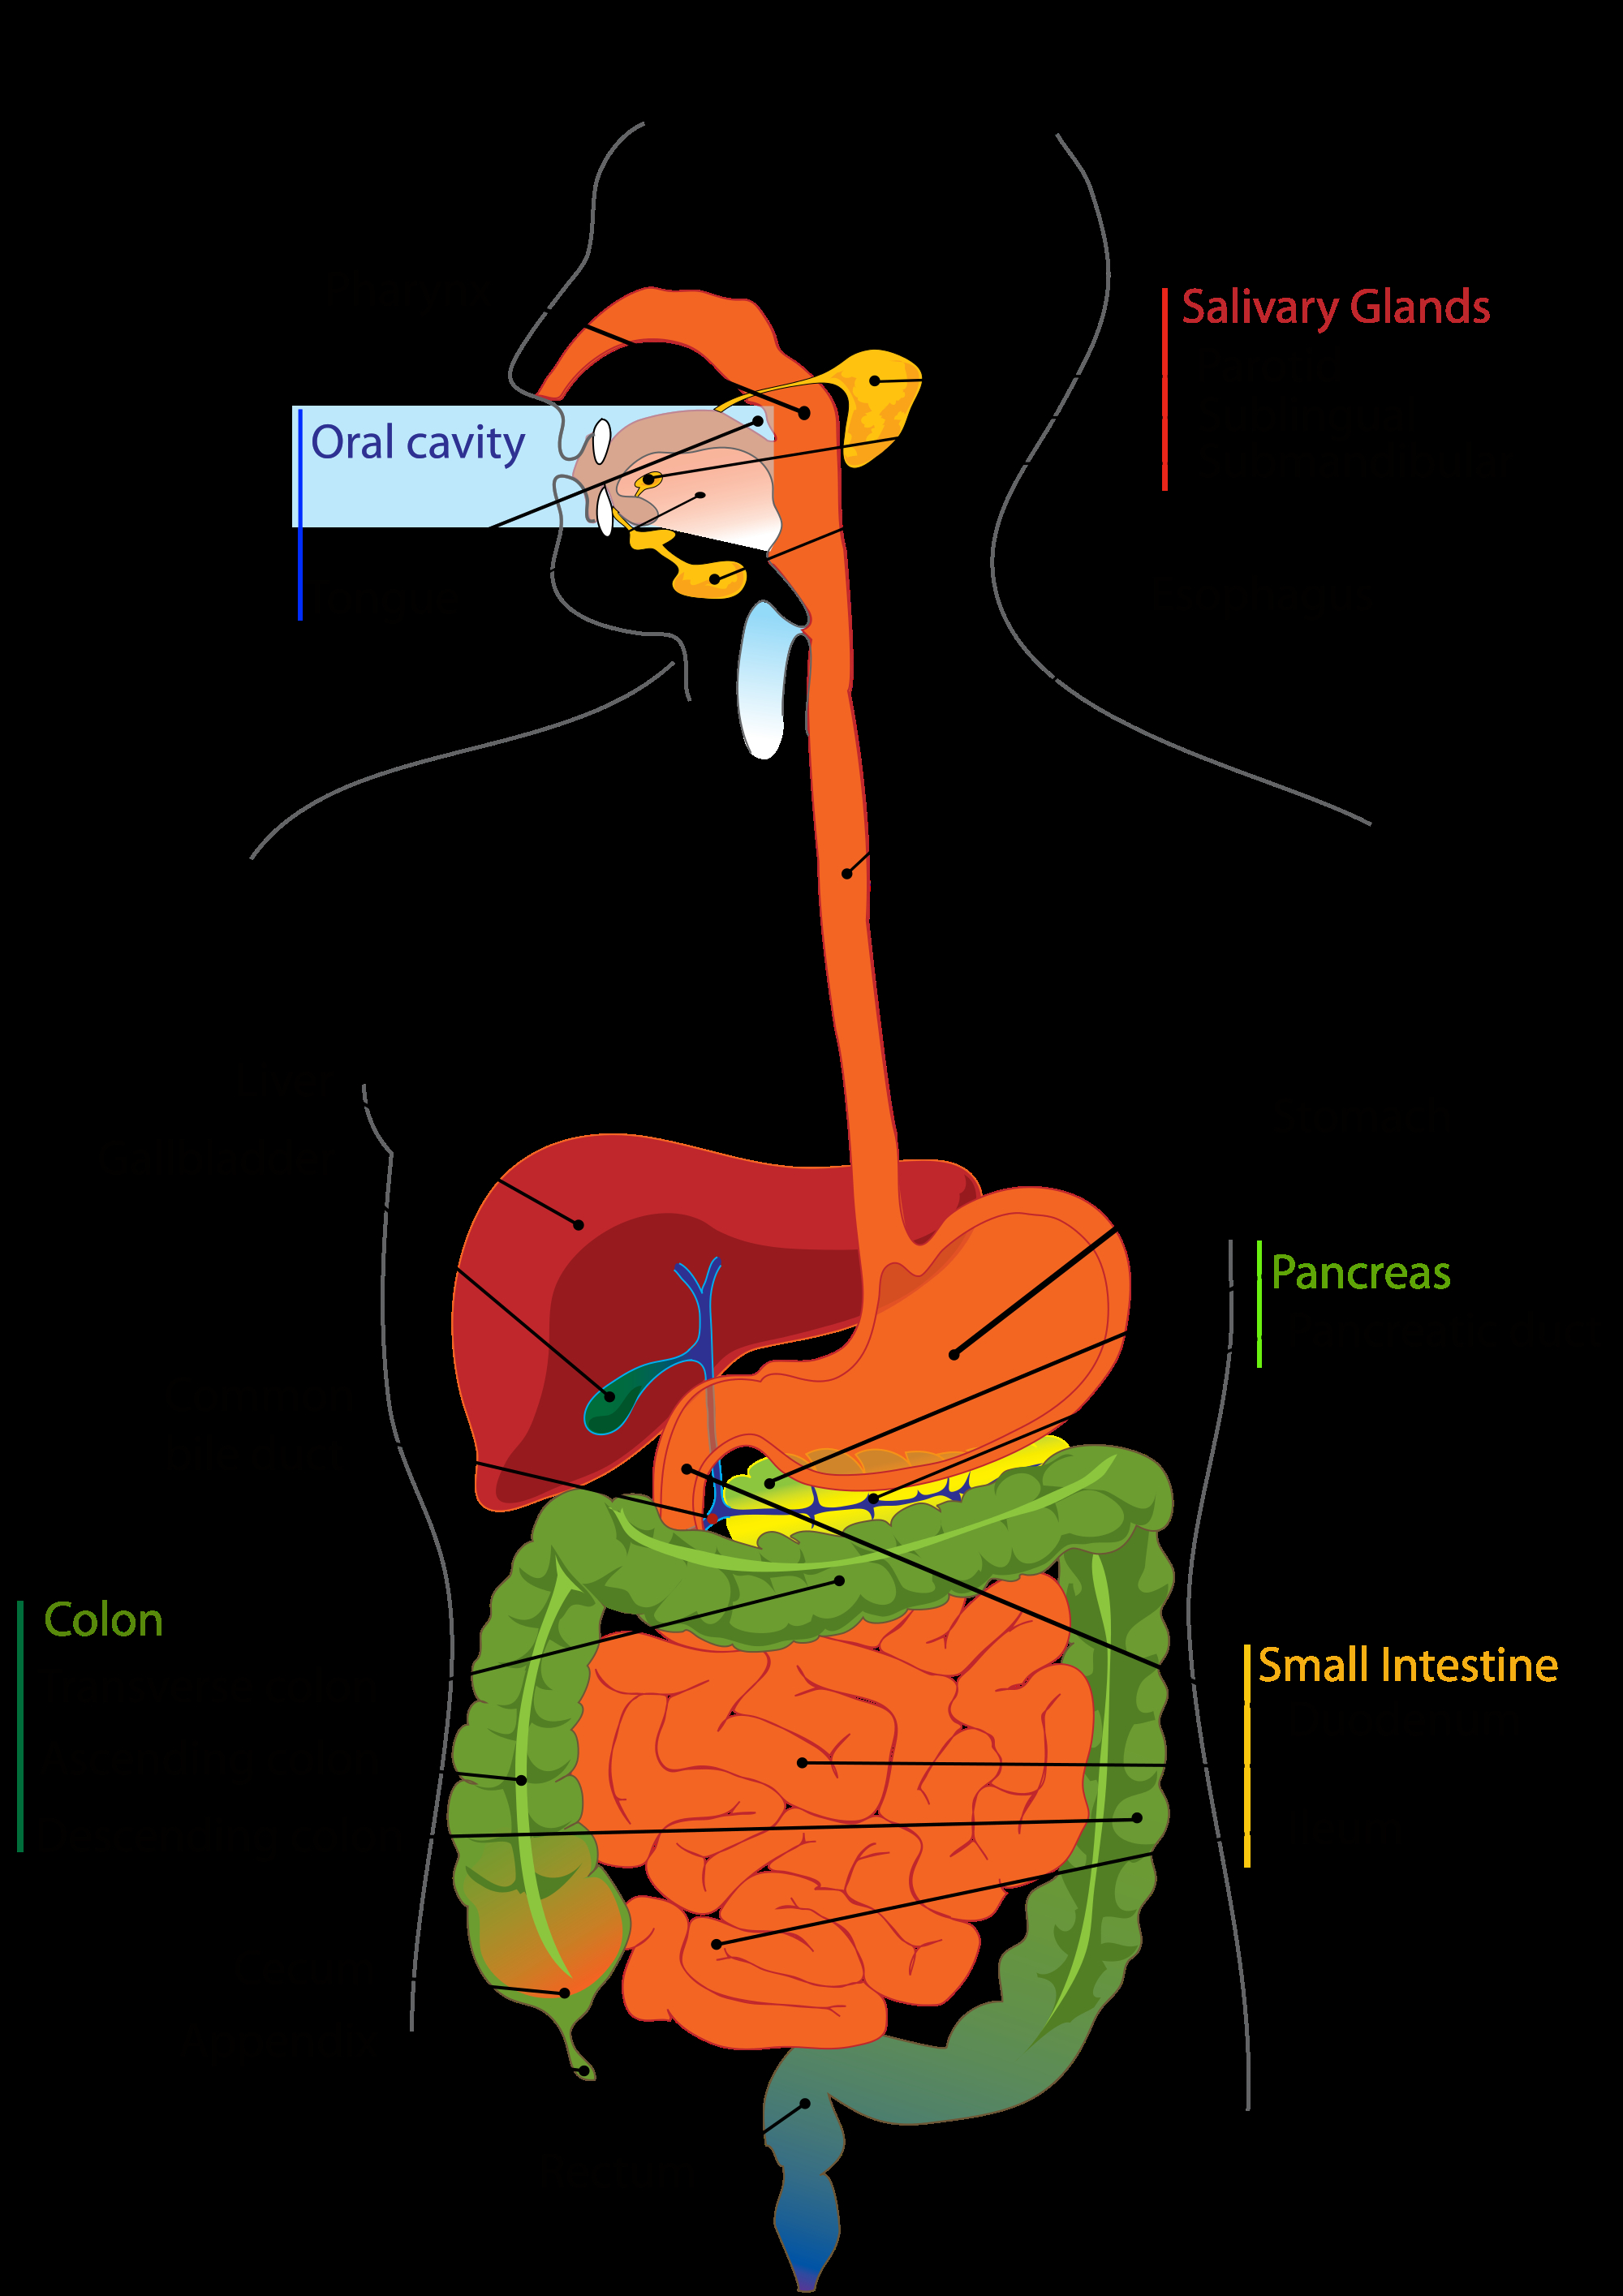 Diagram Of The Digestive System Human Digestive System And Digestion Of Carbohydrates Proteins And